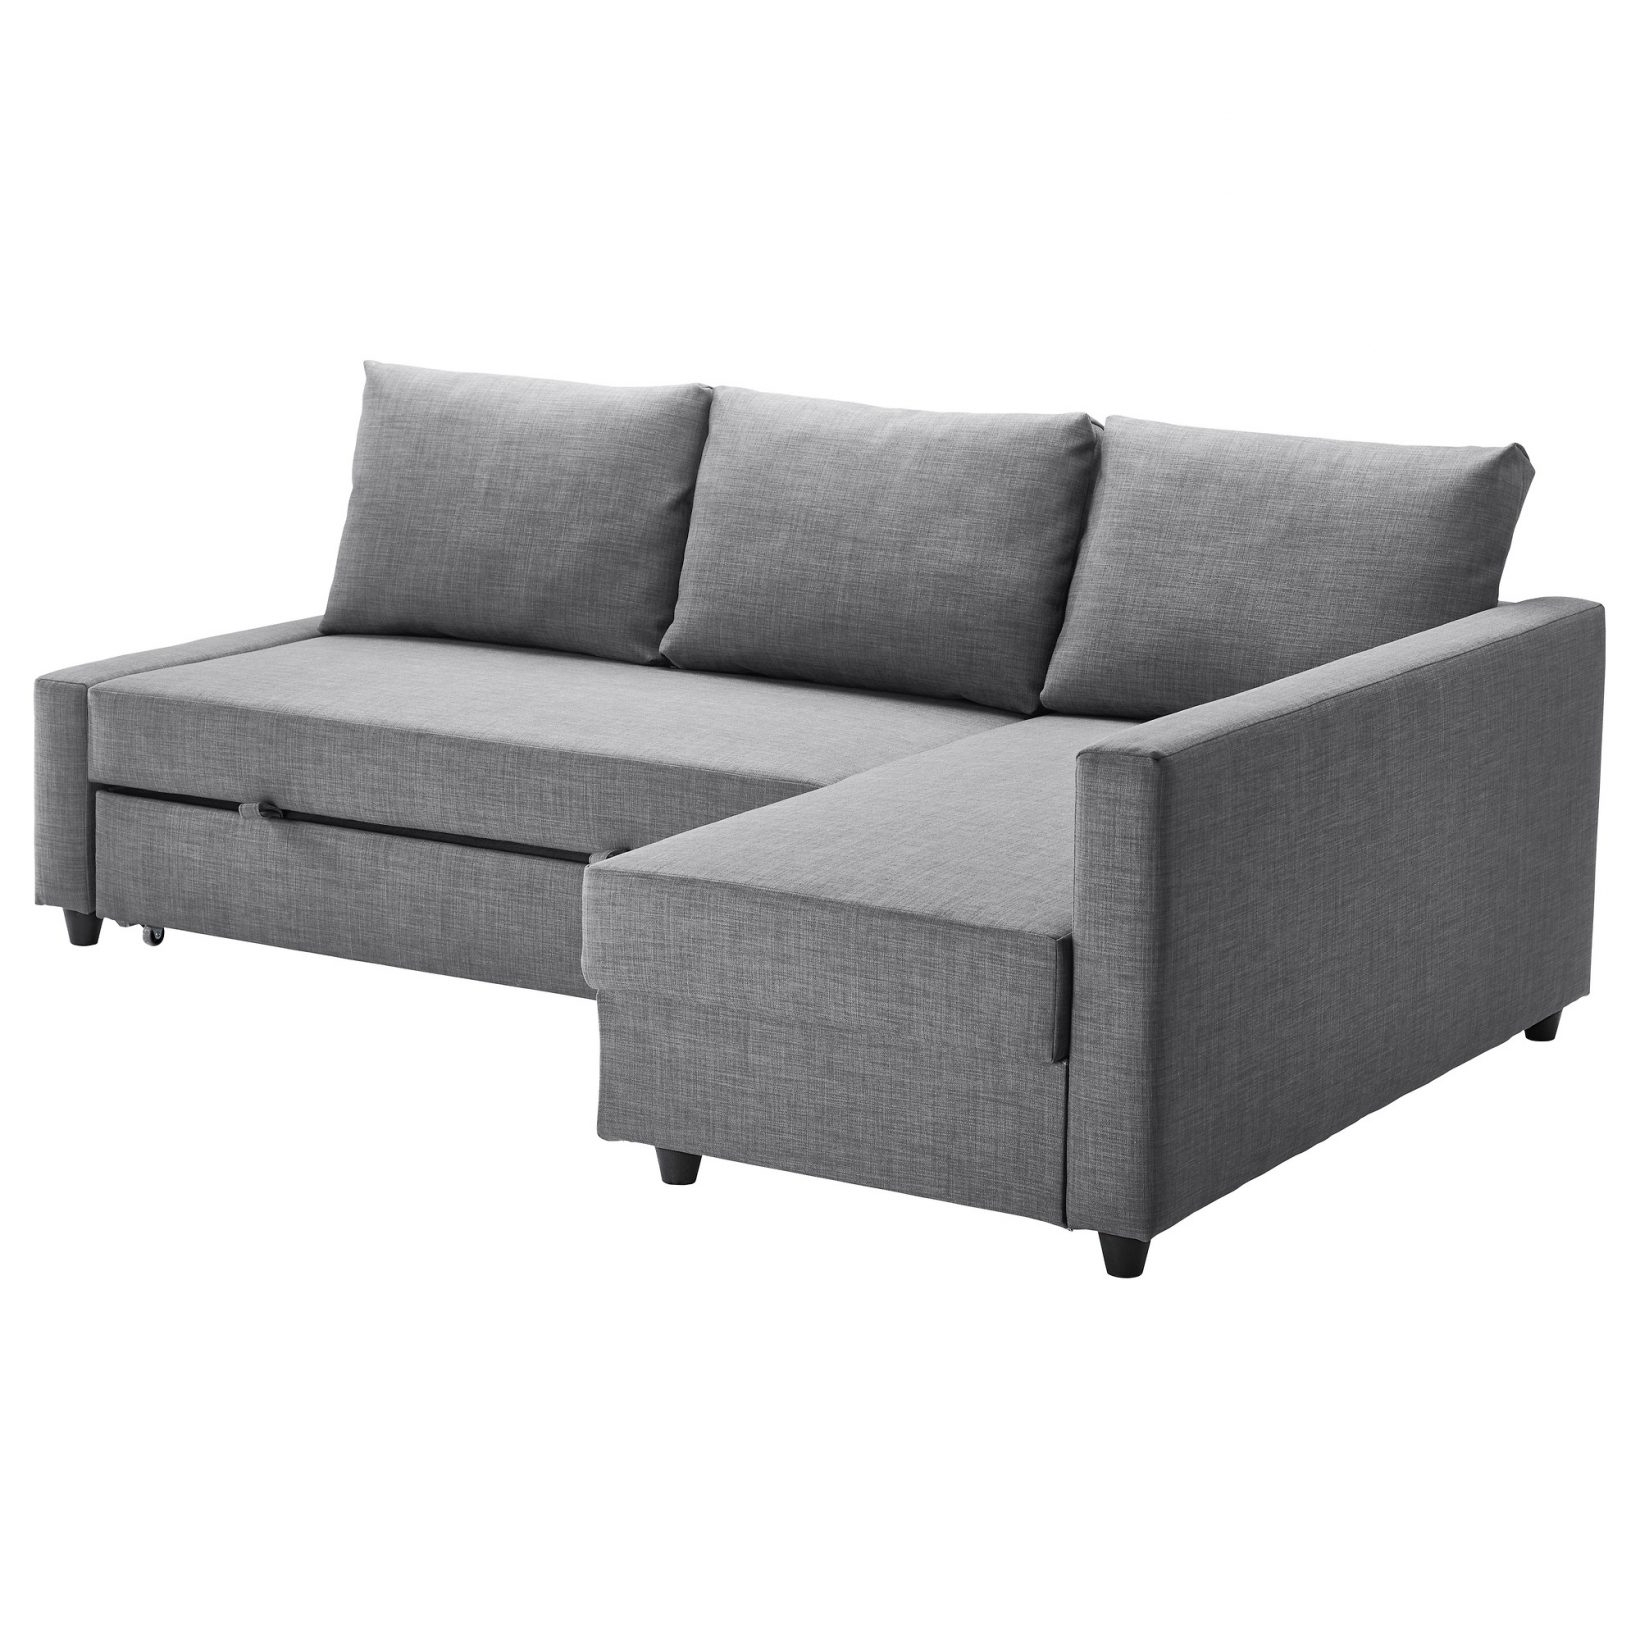 Ikea Corner Sofas With Storage With Most Up To Date Friheten Corner Sofa Bed With Storage – Skiftebo Dark Gray – Ikea (View 7 of 20)